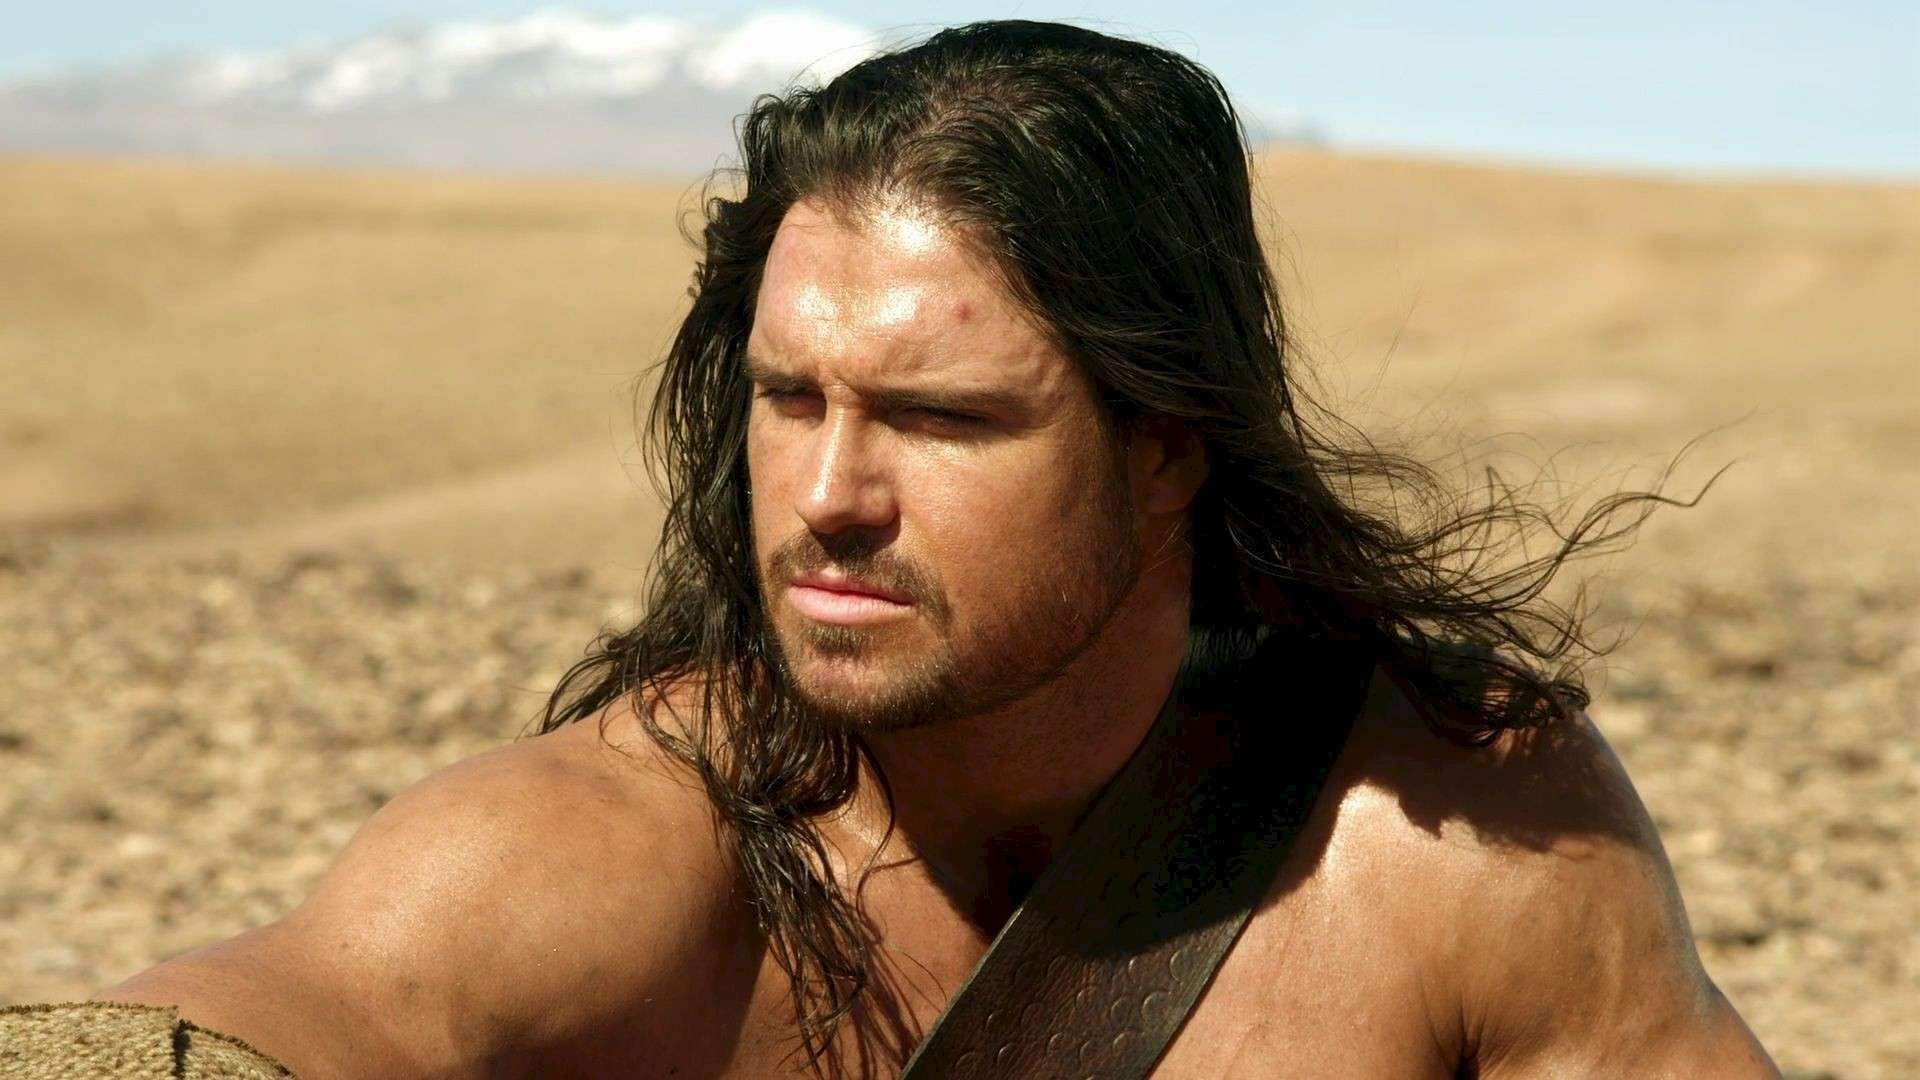 Wrestler John Hennigan as Hercules in Hercules Reborn (2014)